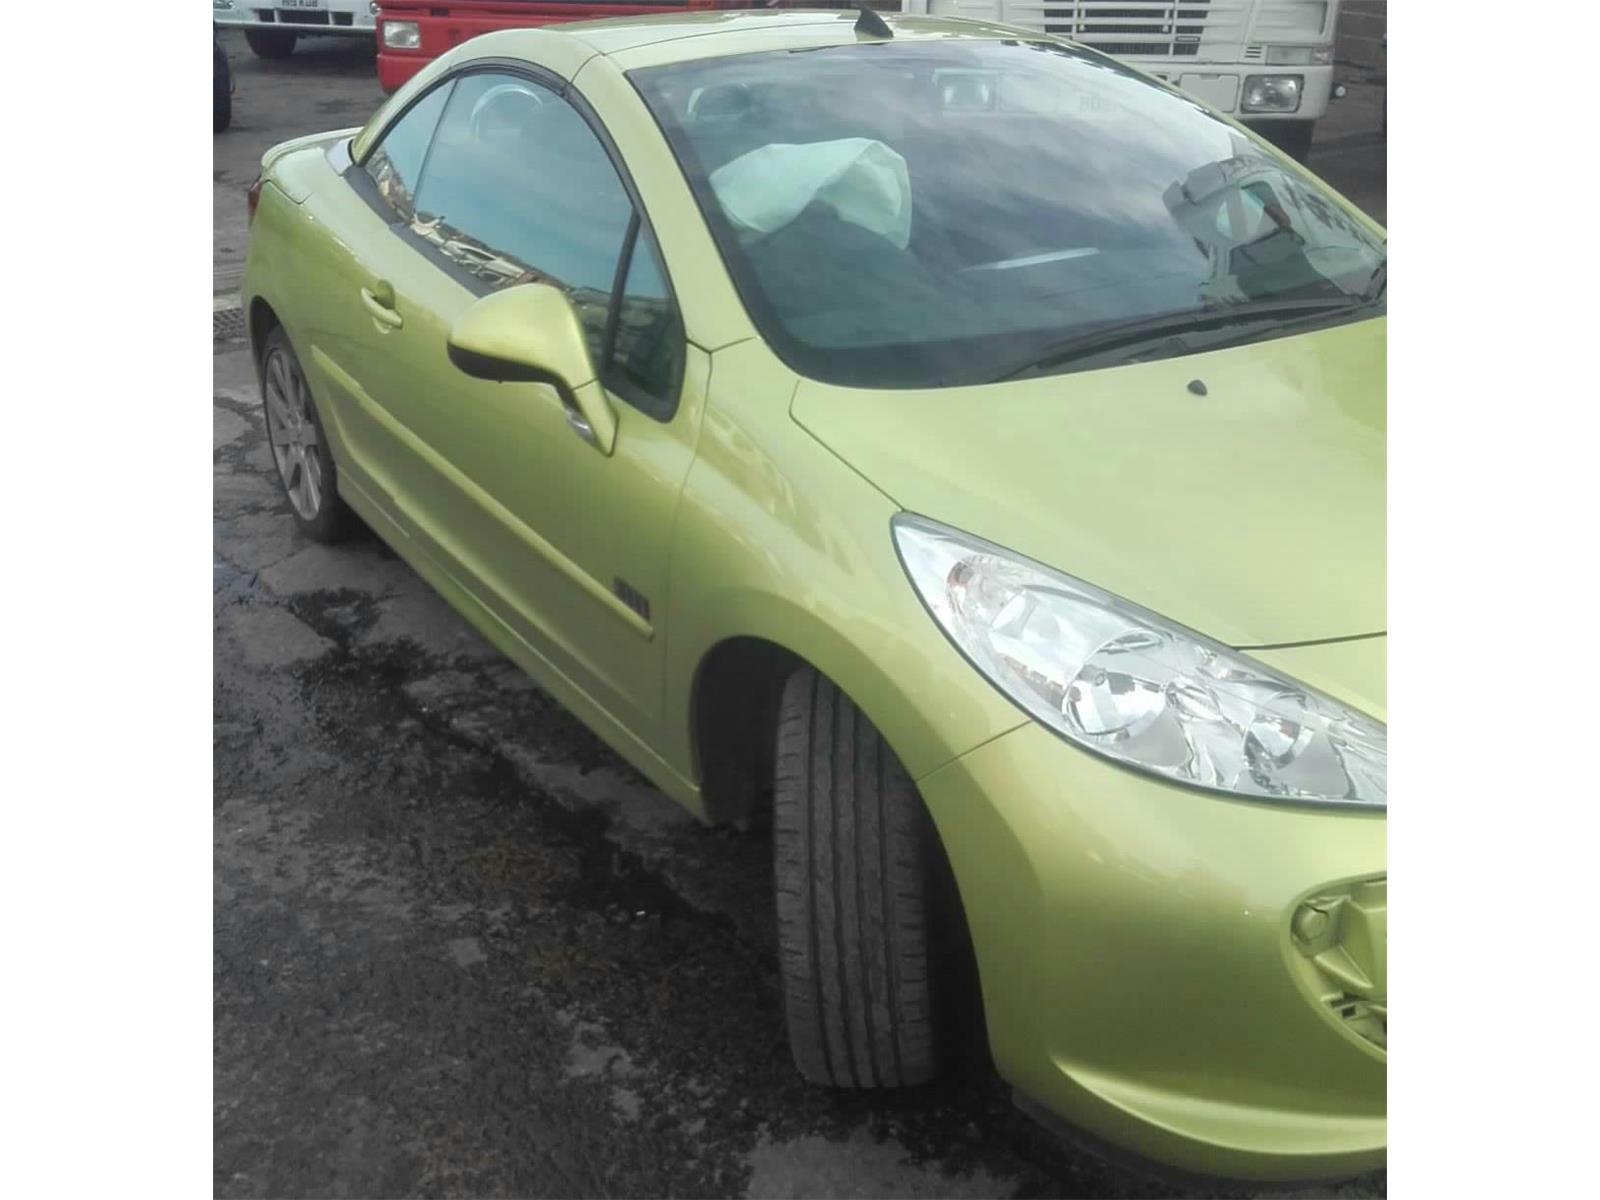 Synetiq 2009 Peugeot 207 Mk1 Ph1 2006 To 2012 Elle Cc 2 Door Convertible Petrol Manual Breaking For Used And Spare Parts